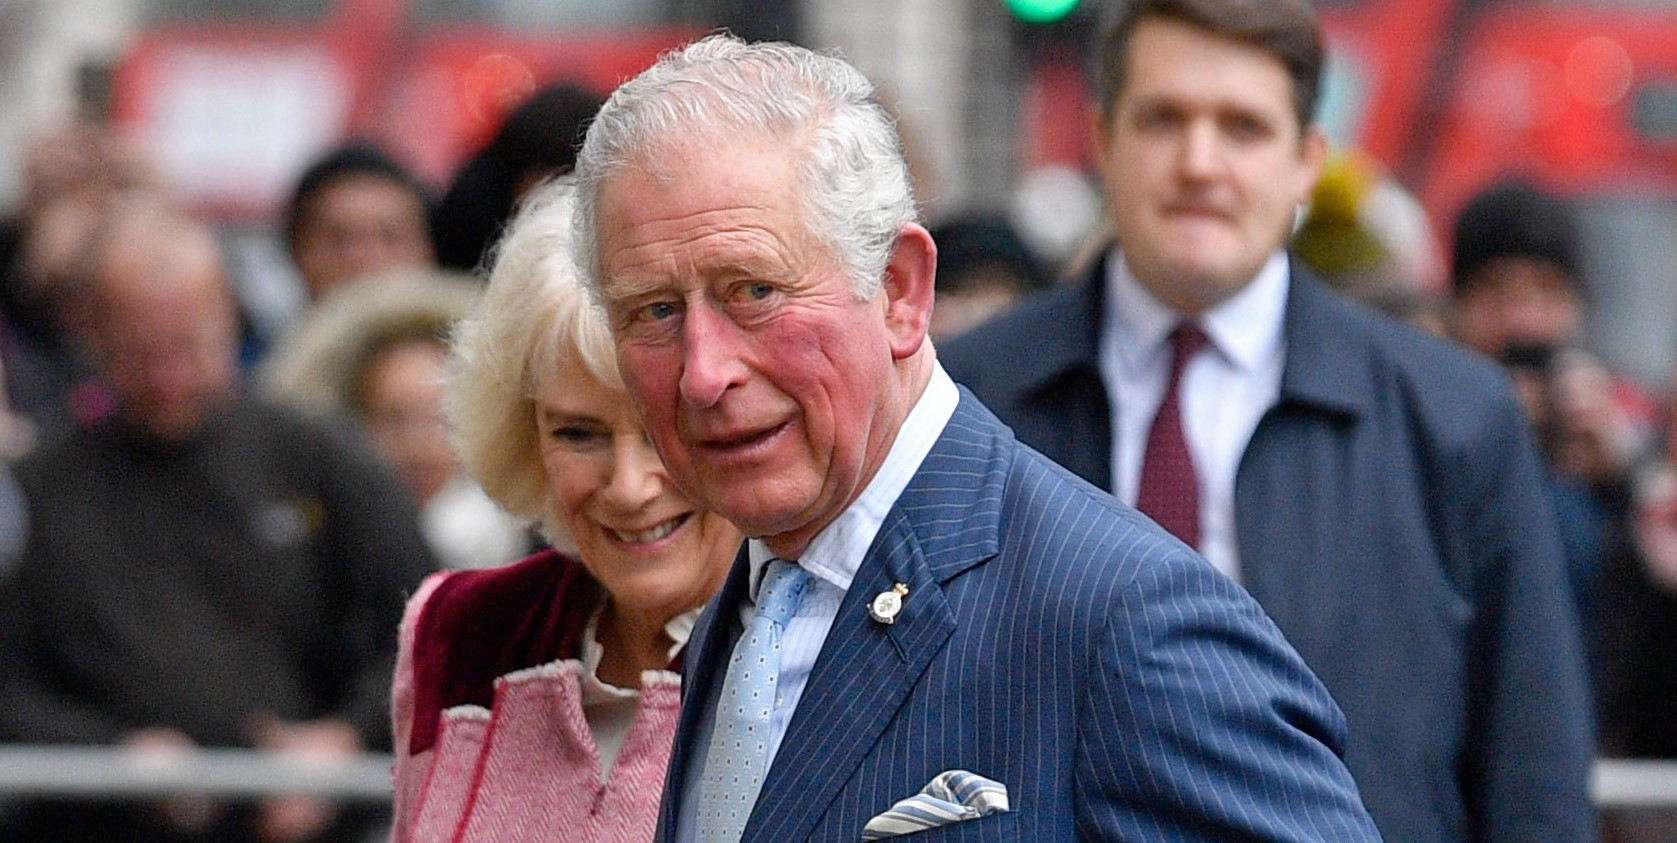 Prince Charles urges Britain to stay strong in first address since coronavirus recovery